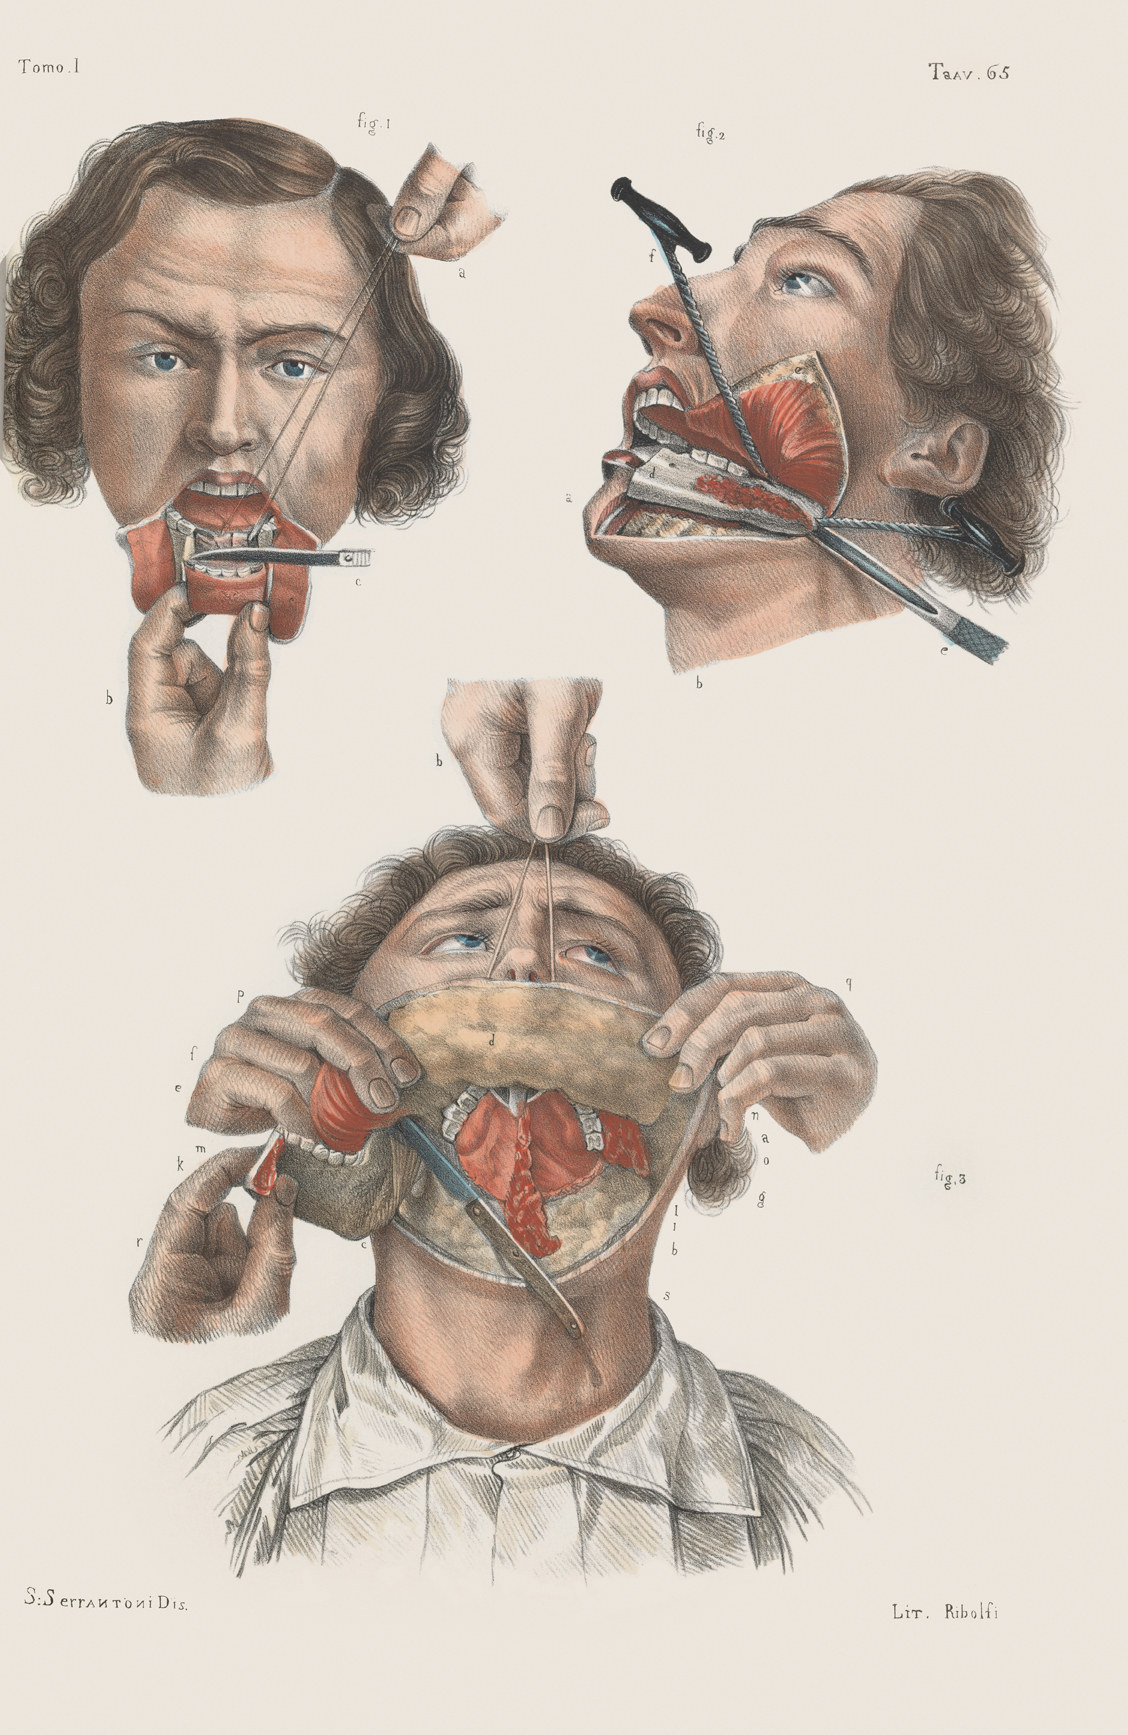 Morbidly Beautiful Pictures Reveal The Horror Of Surgery In The Victorian Era